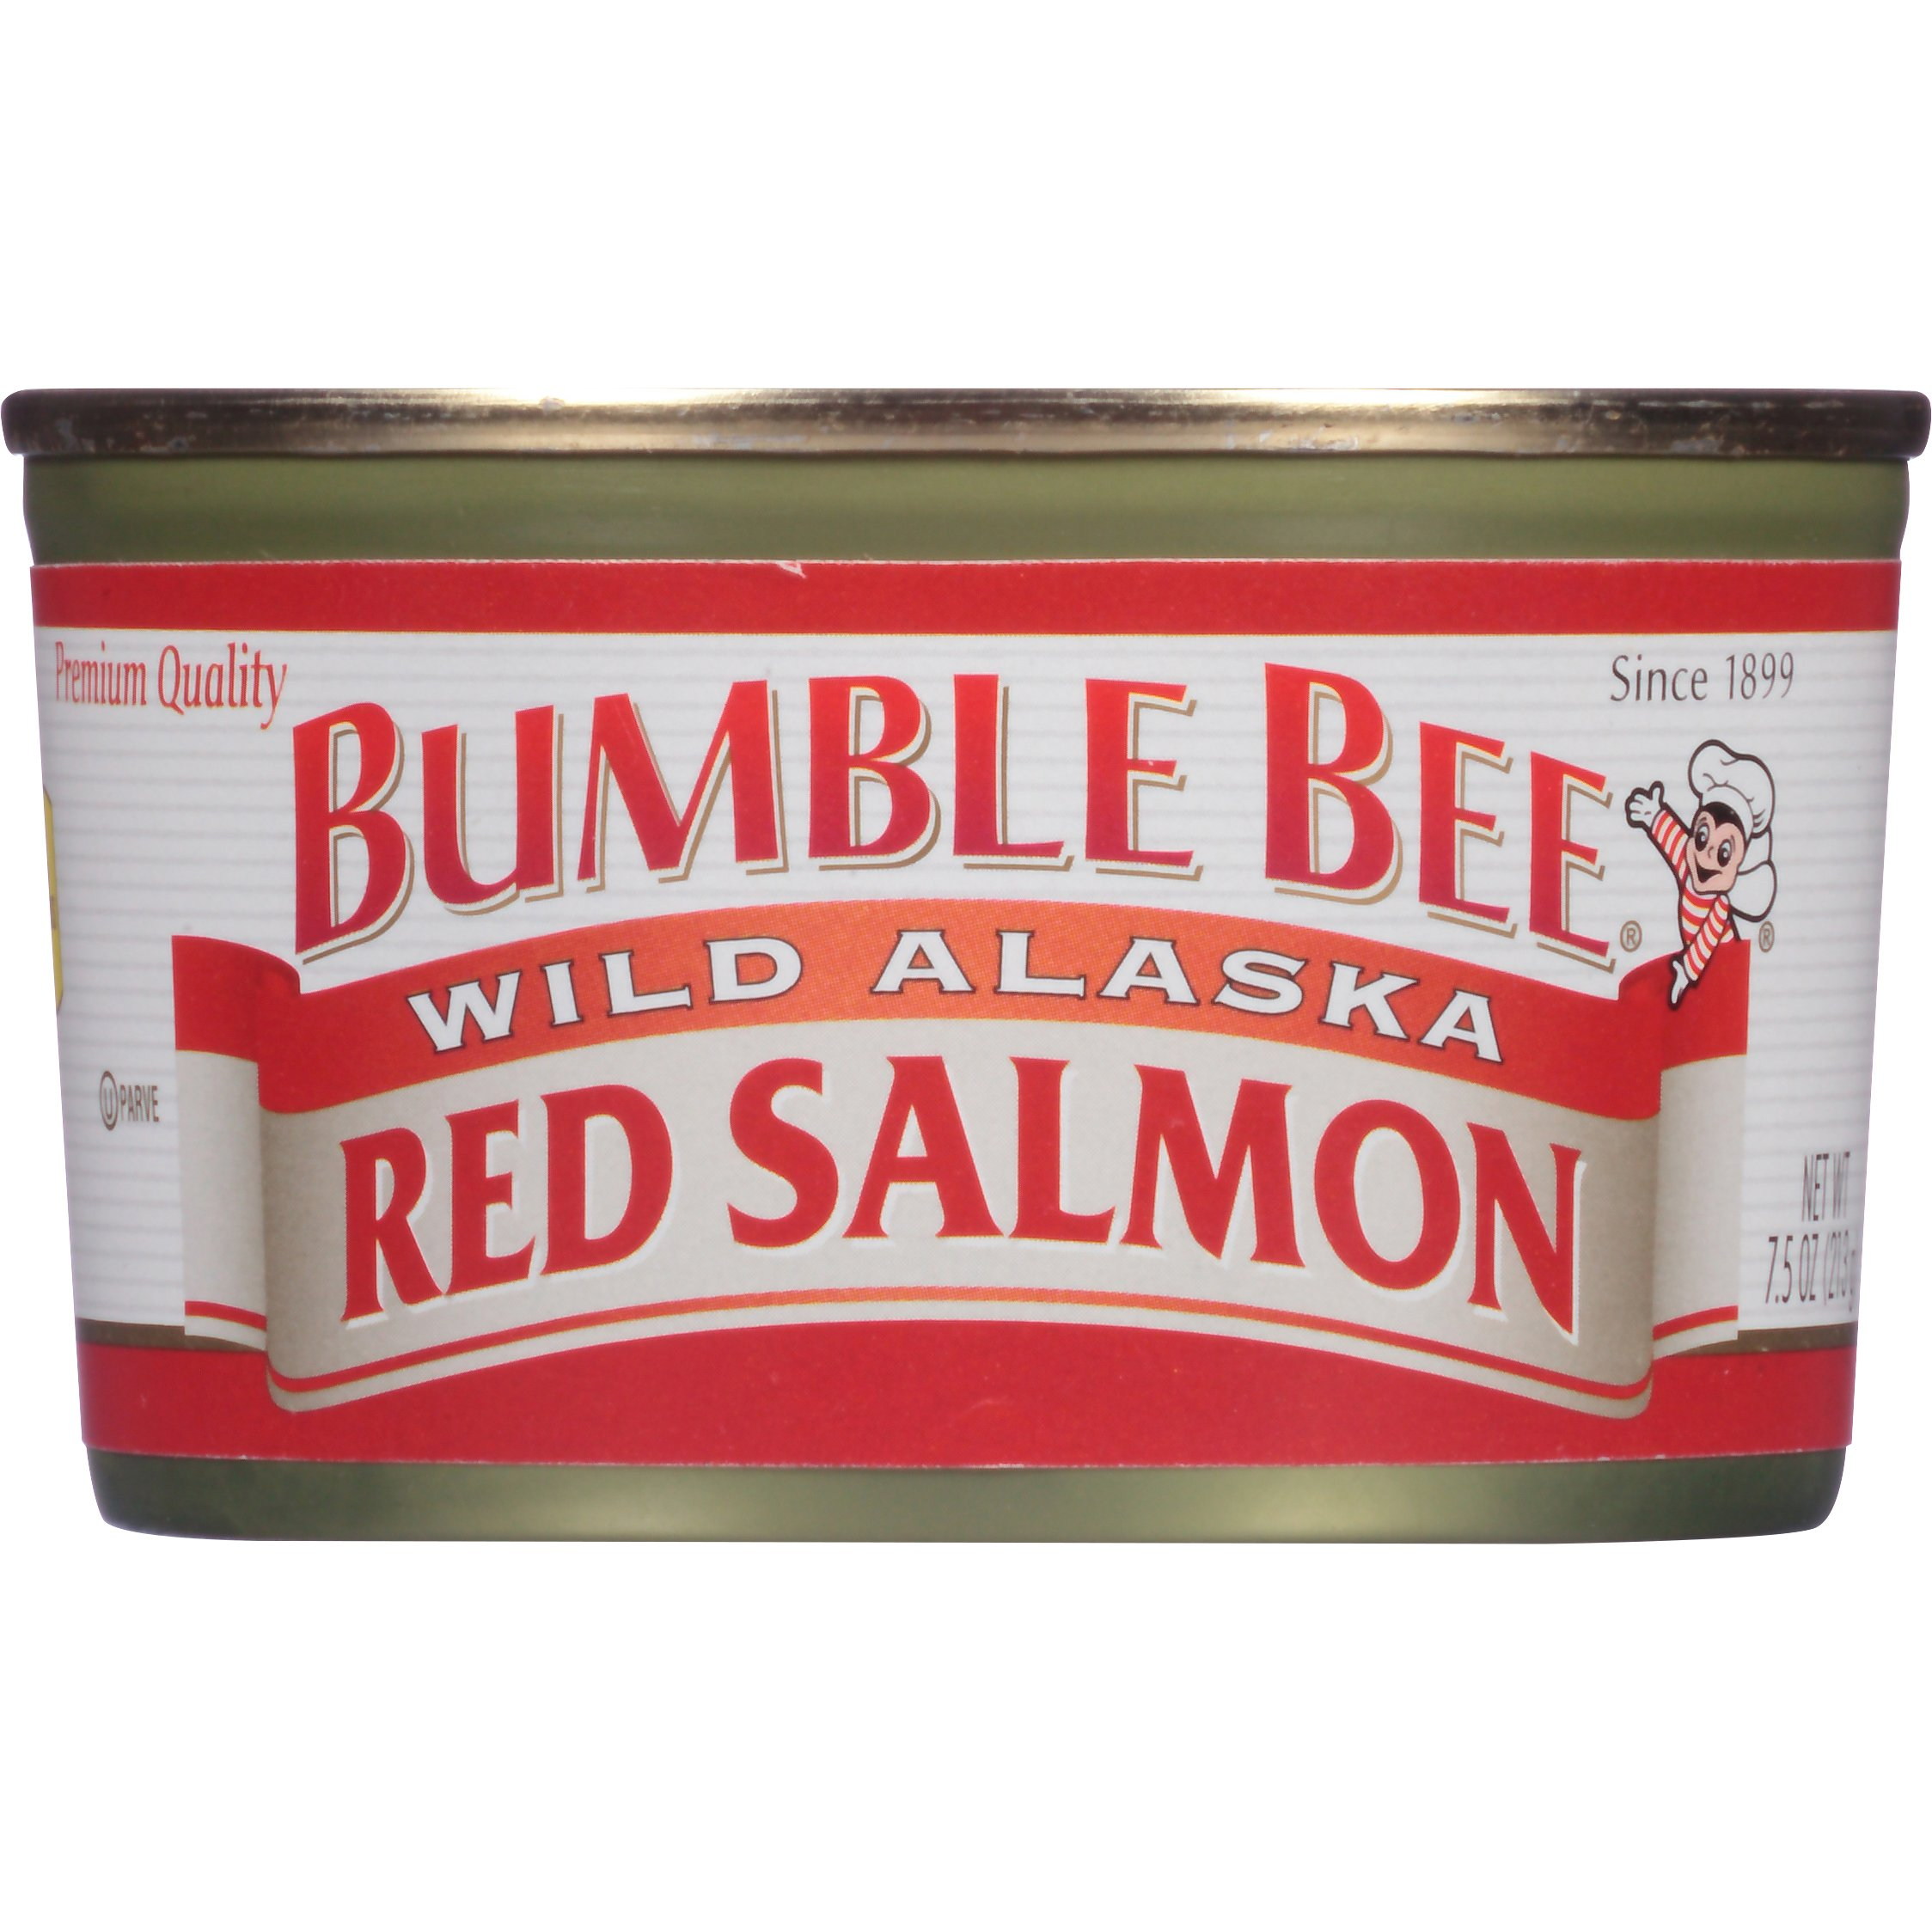 BUMBLE BEE Wild Alaska Red Salmon, 7.5 Ounce Cans (Pack of 12), Wild Caught, High Protein Food, Keto Food, Gluten Free, High Protein Snacks, Canned Food by Bumble Bee